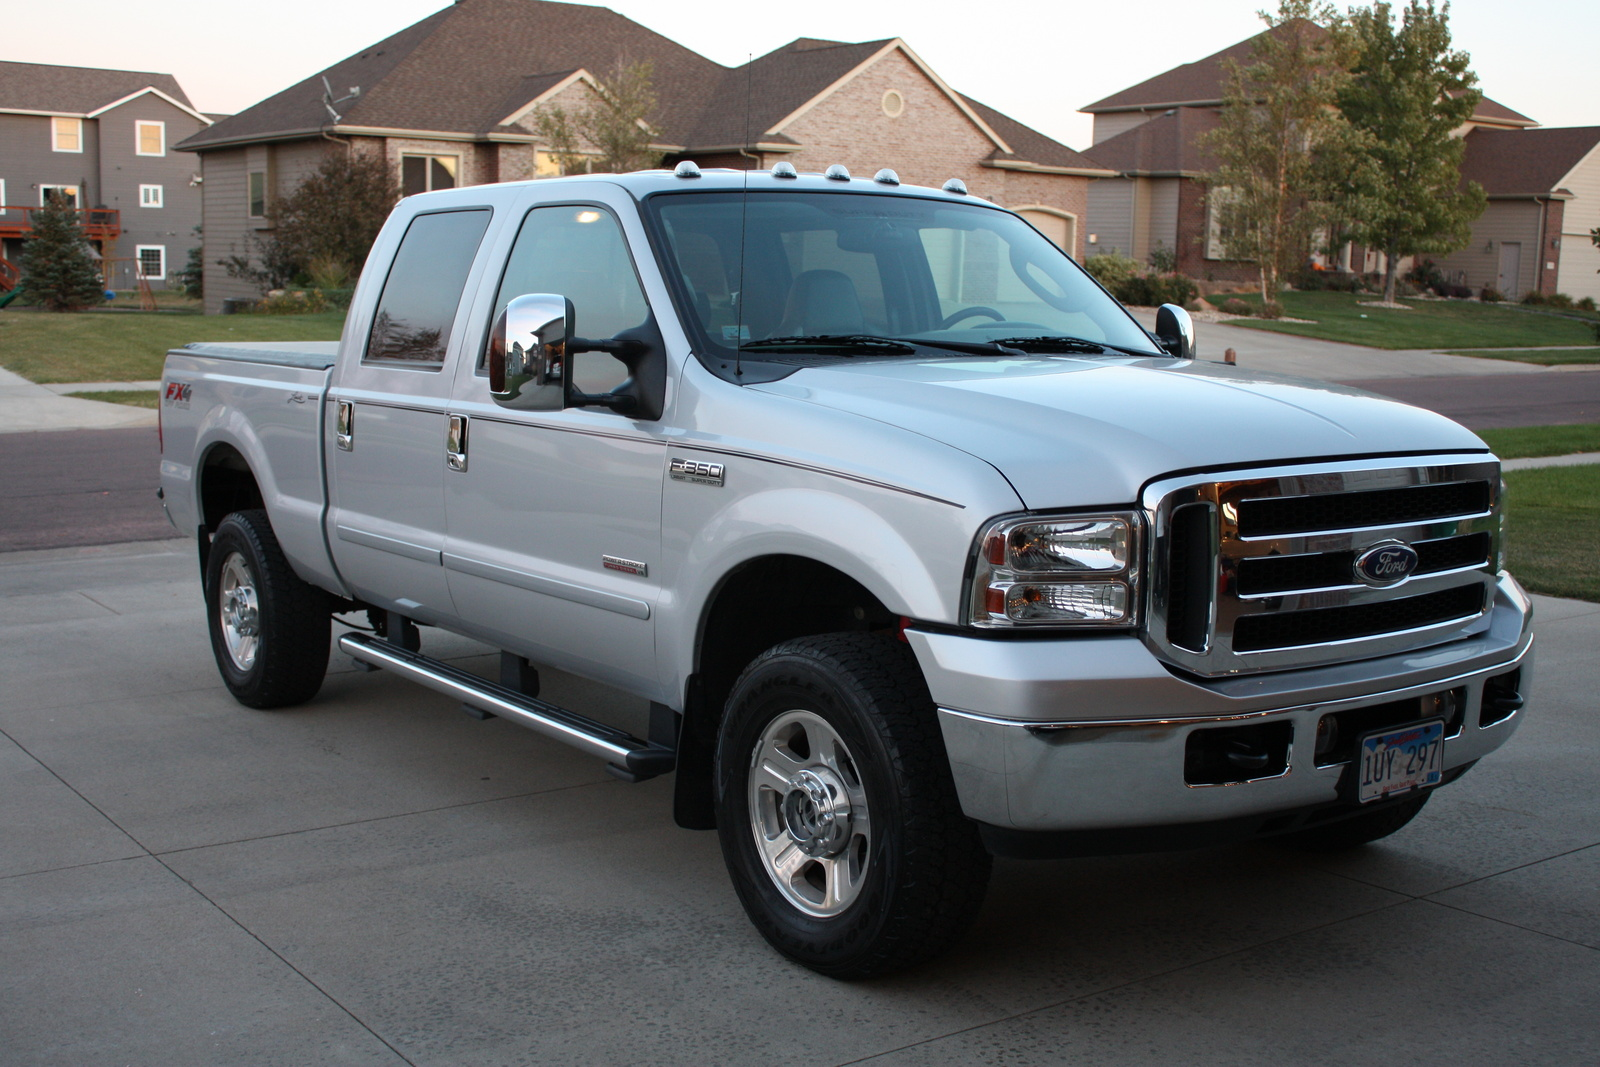 2005 Ford F-350 Super Duty #10